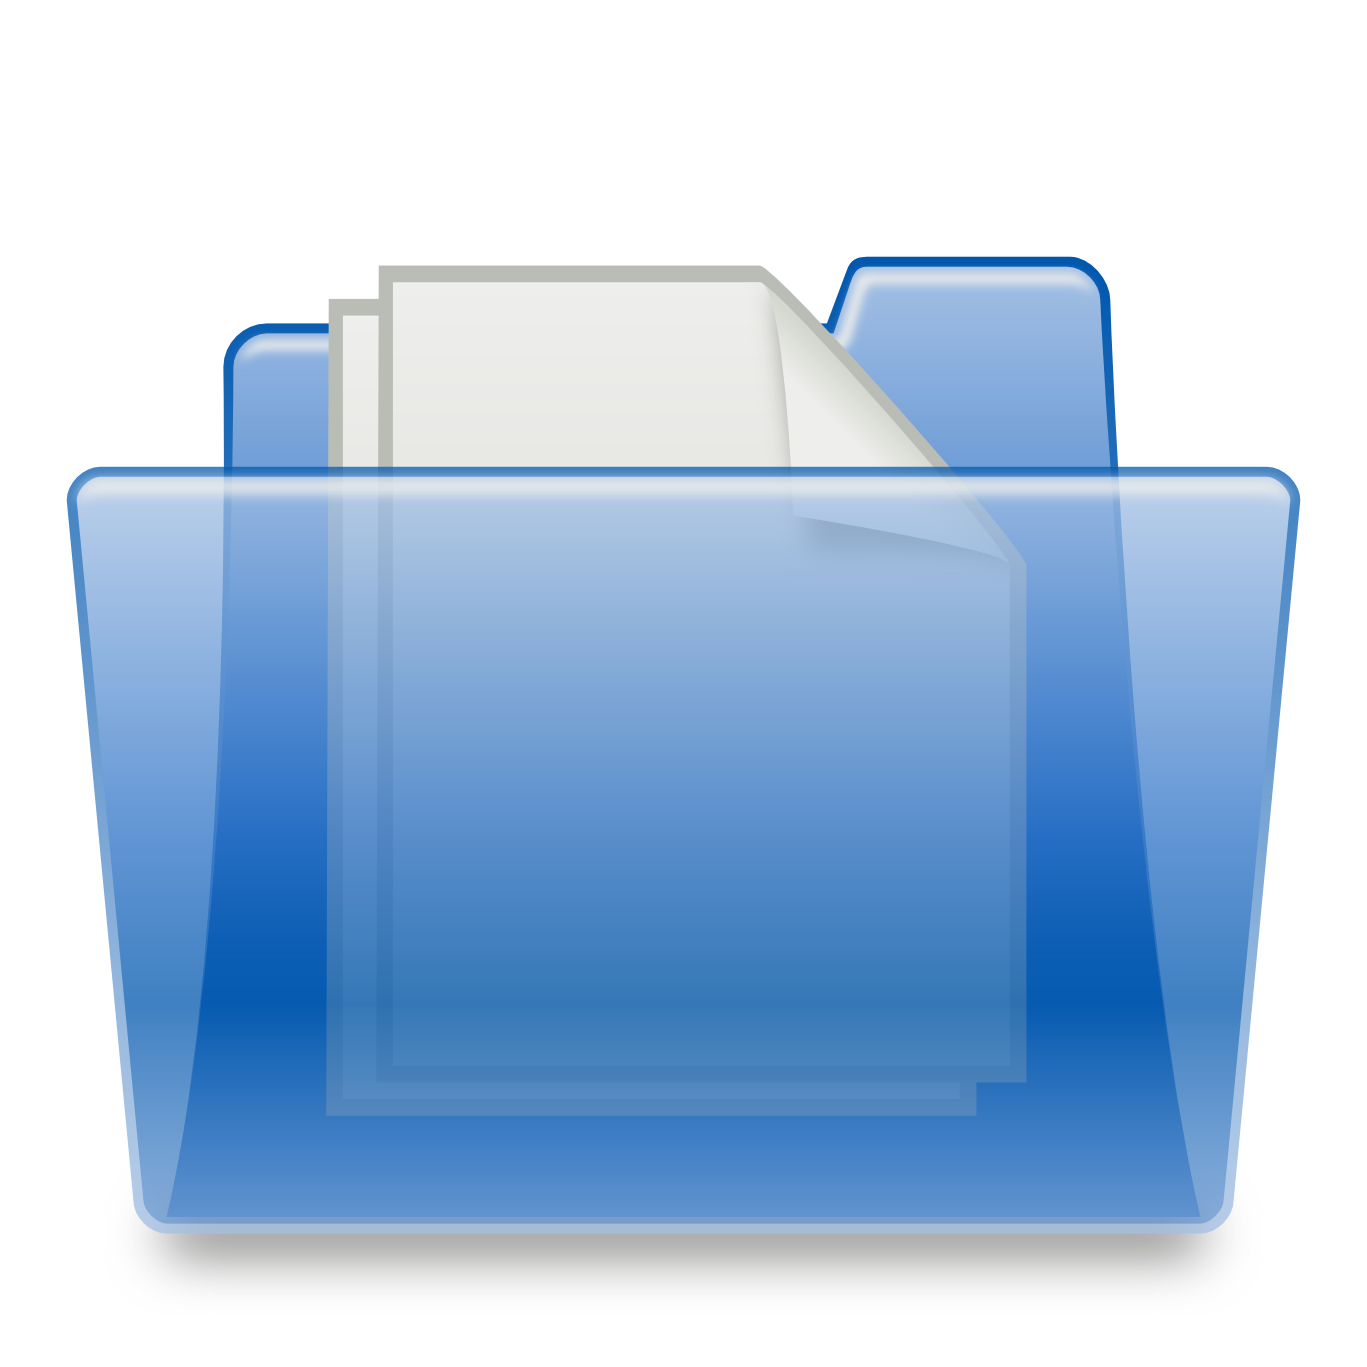 PNG File Name: Folders PNG - Folder PNG